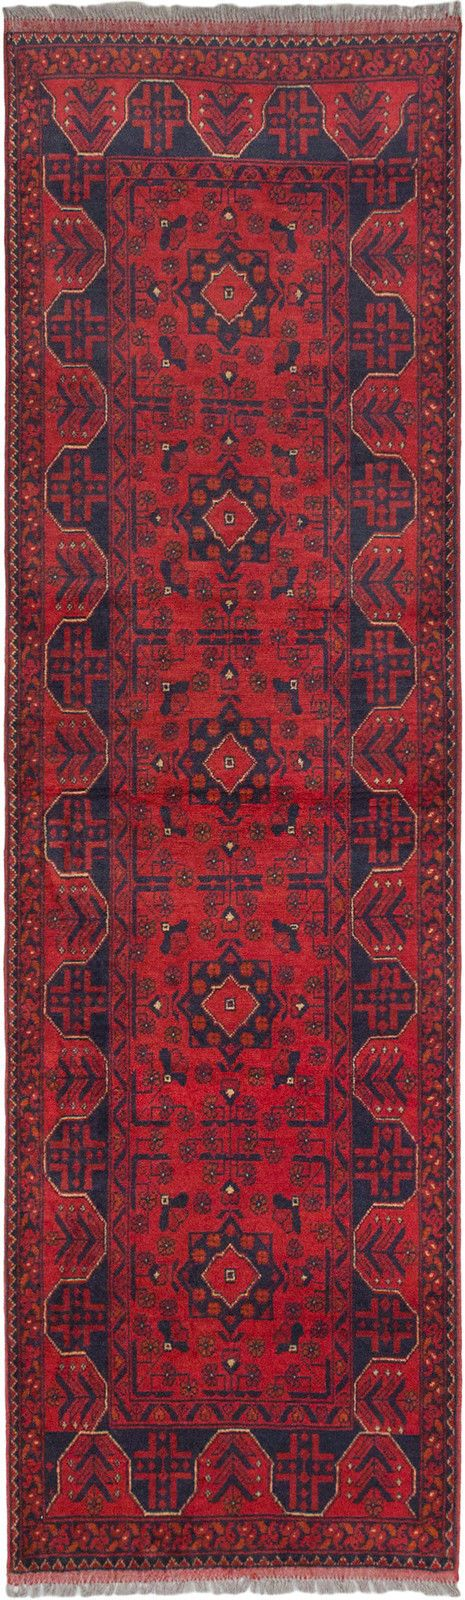 Hand Knotted Afghanistan Finest Khal Mohammadi